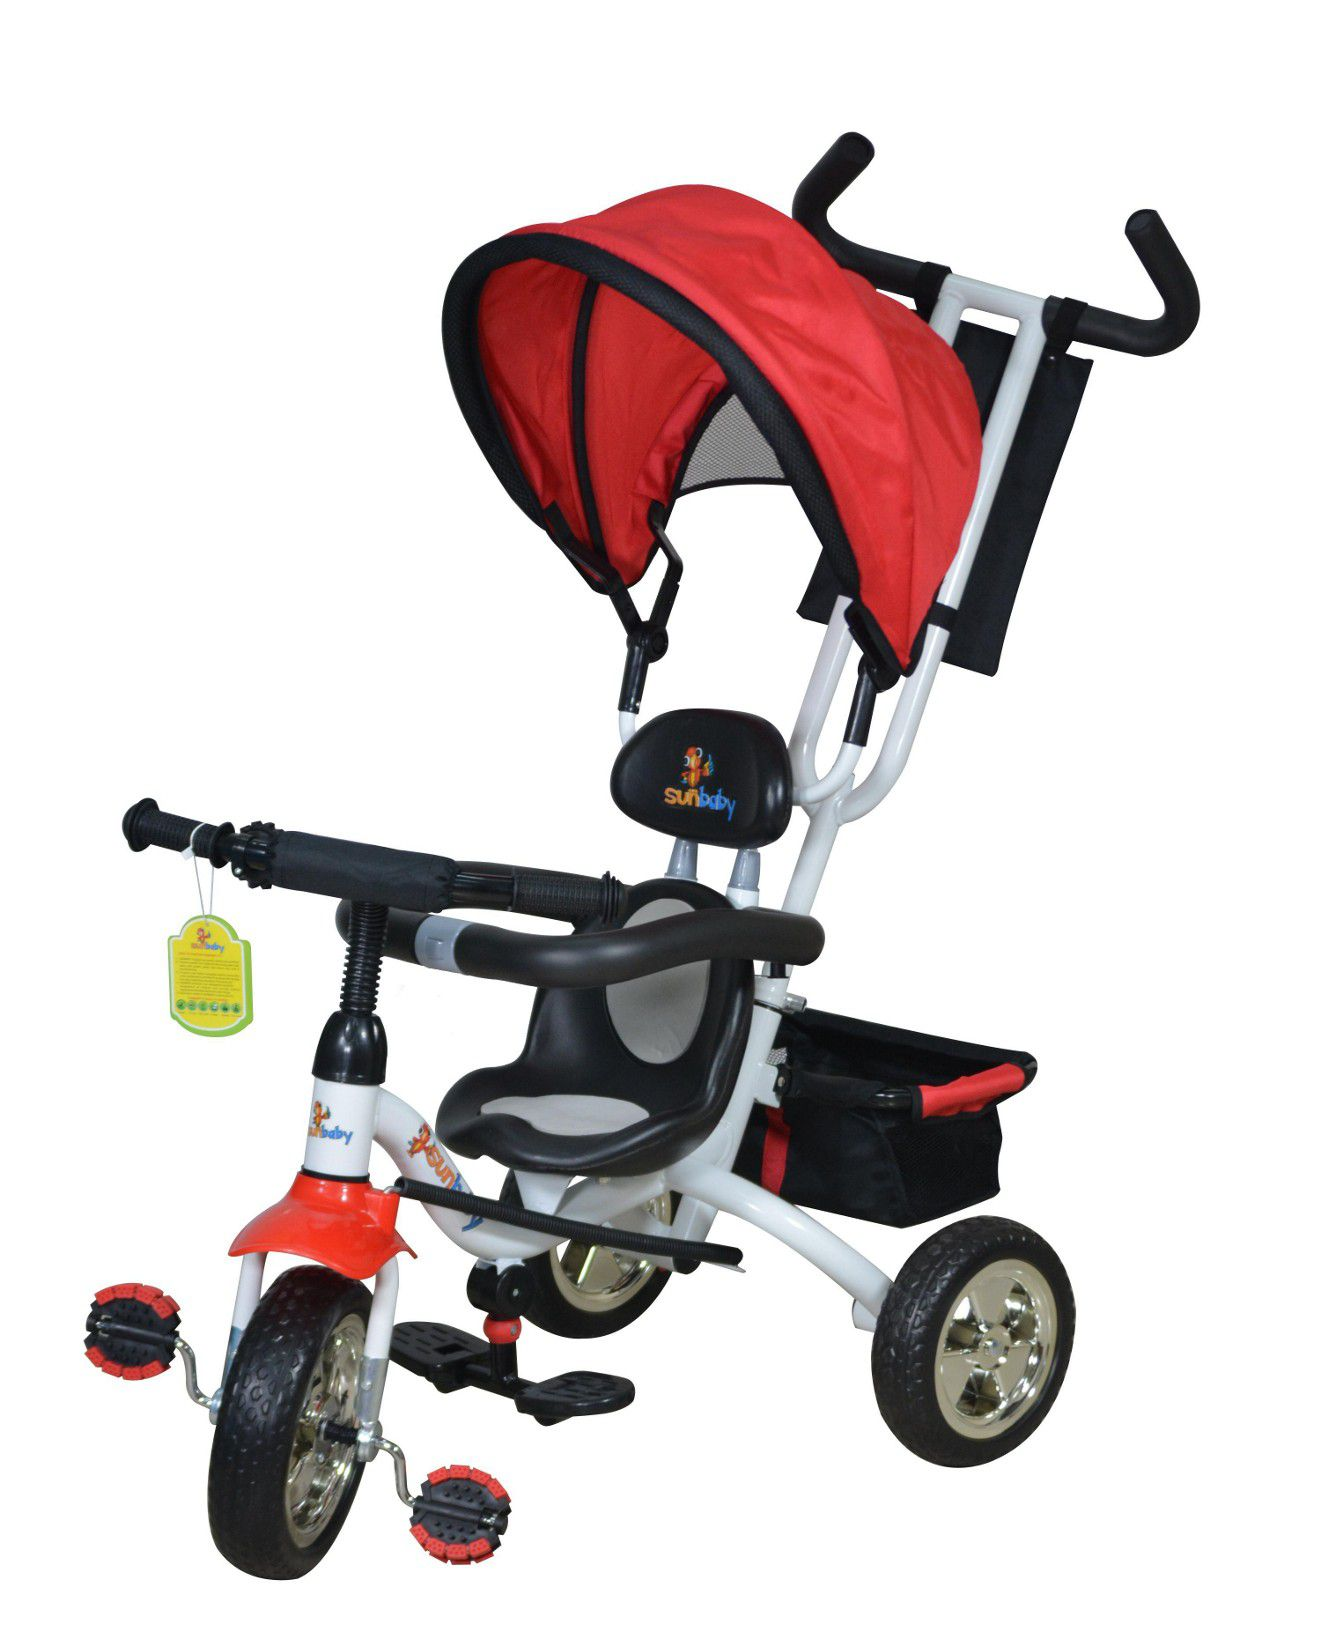 Sunbaby Multicolour Iron and Plastic Baby Tricycle